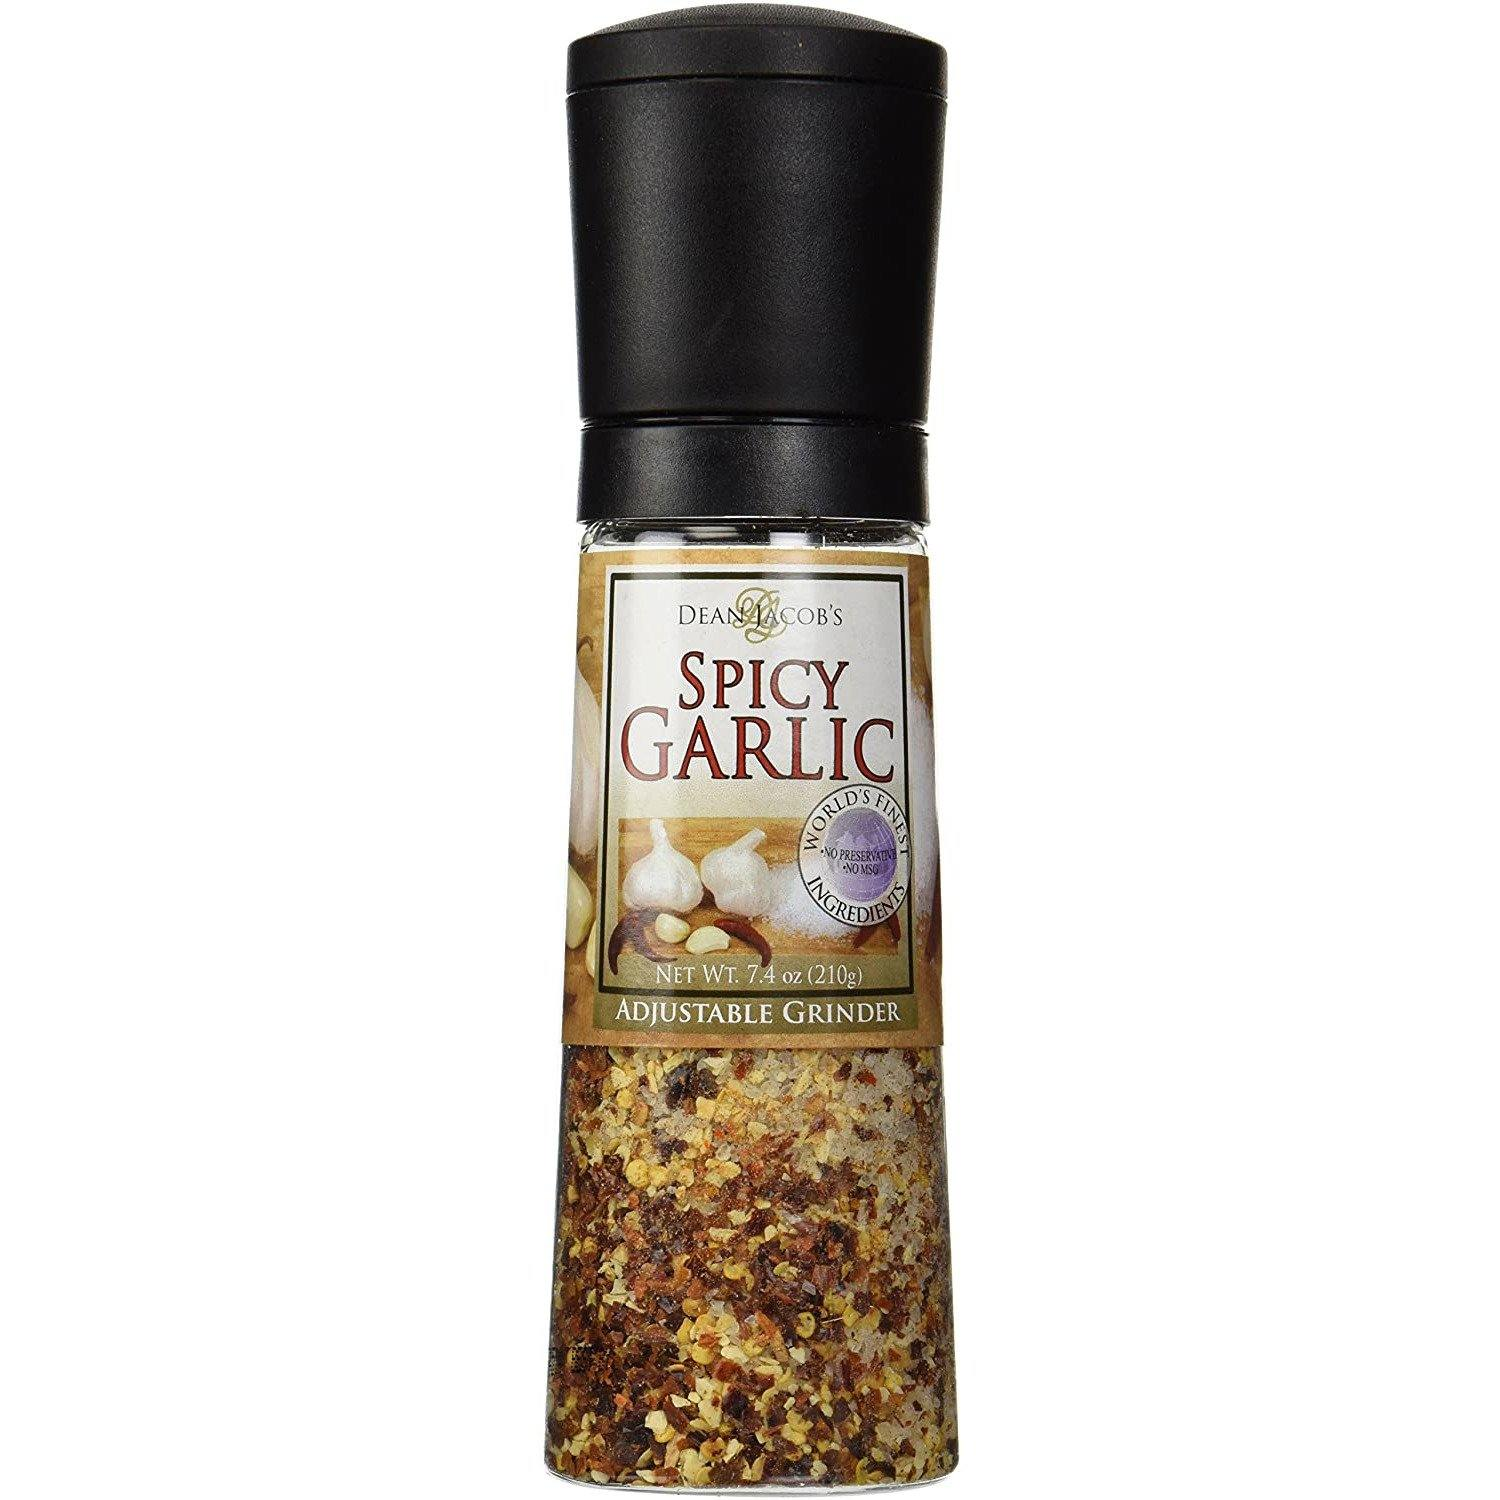 Dean Jacobs - Spicy Garlic- Adjustable Grinder